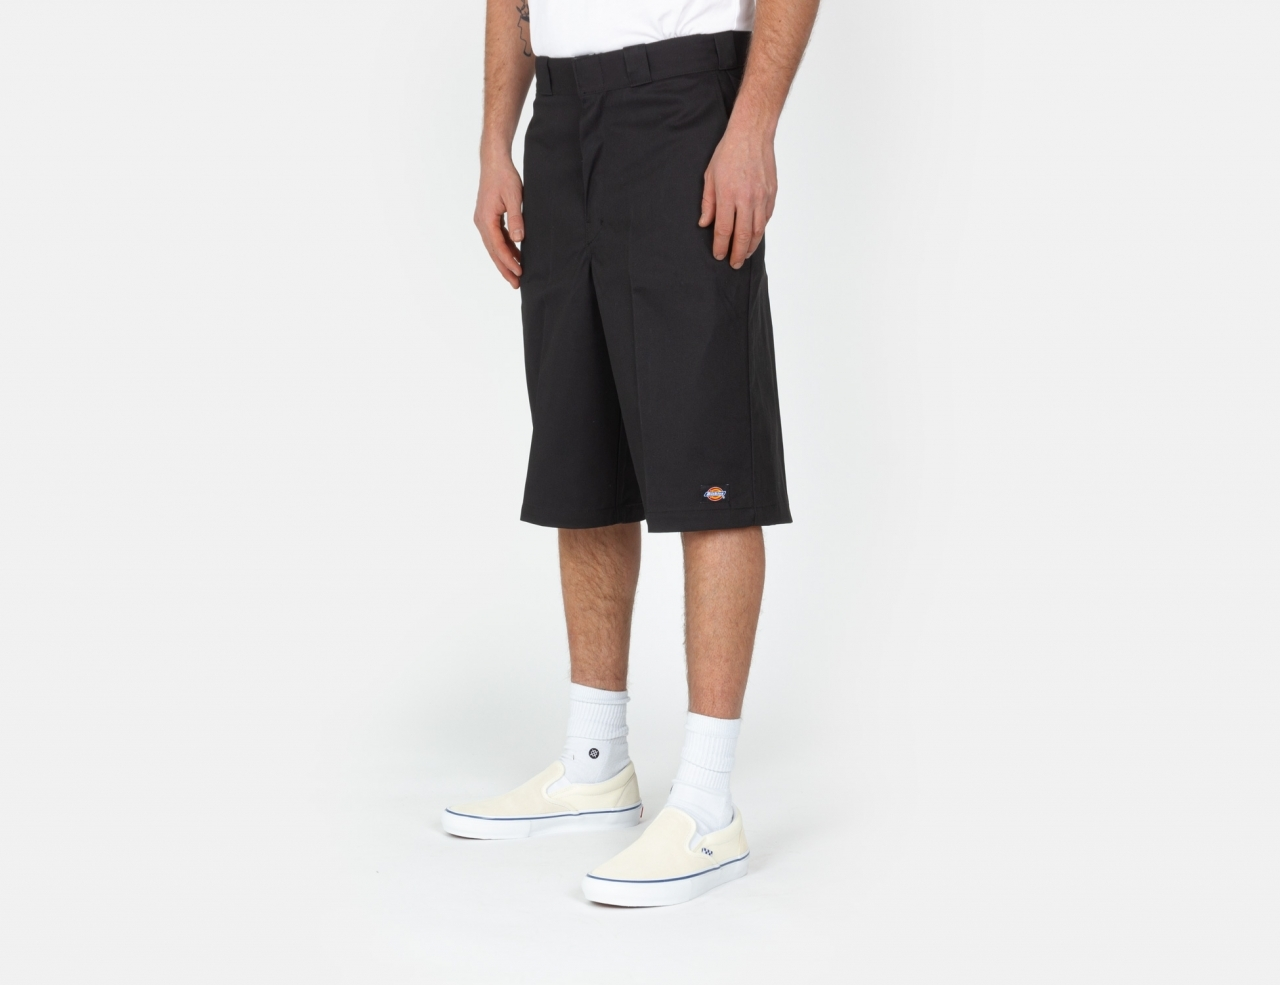 Dickies 13in Mlt Pkt Chino Shorts - Black